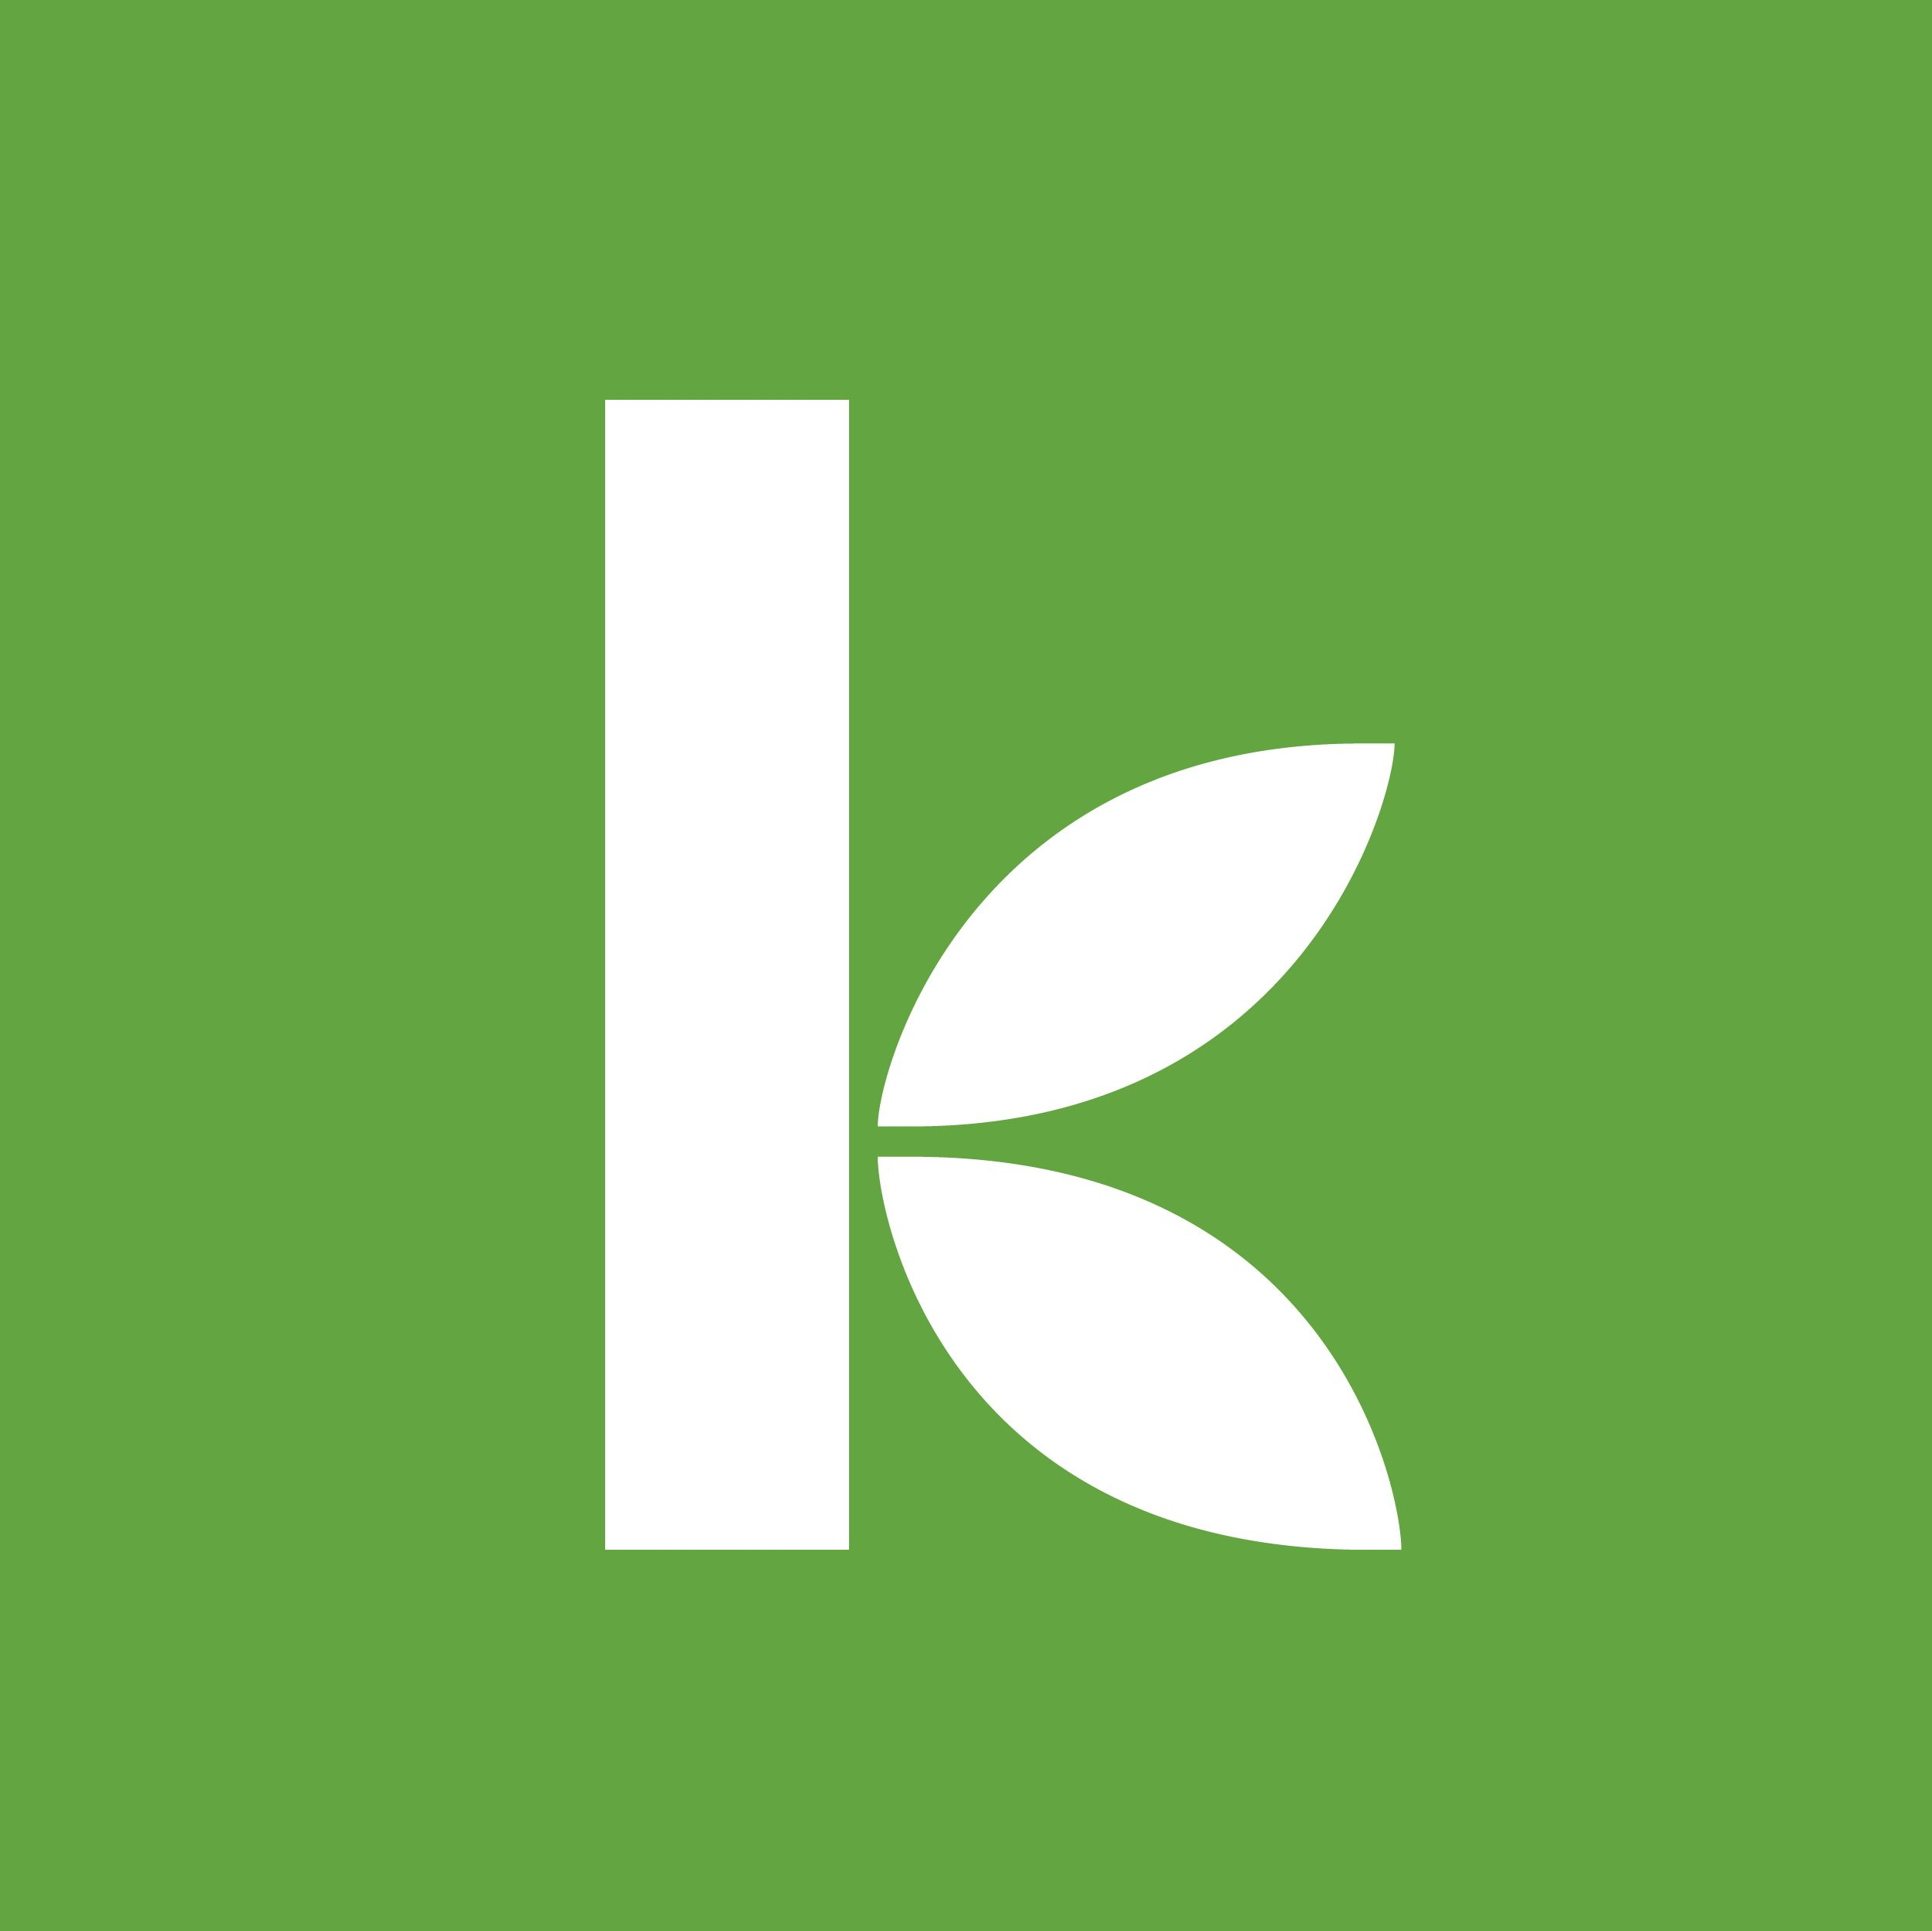 Kiva Us Loans Kiva Kiva Is Now Allowing Loans To Be Given To